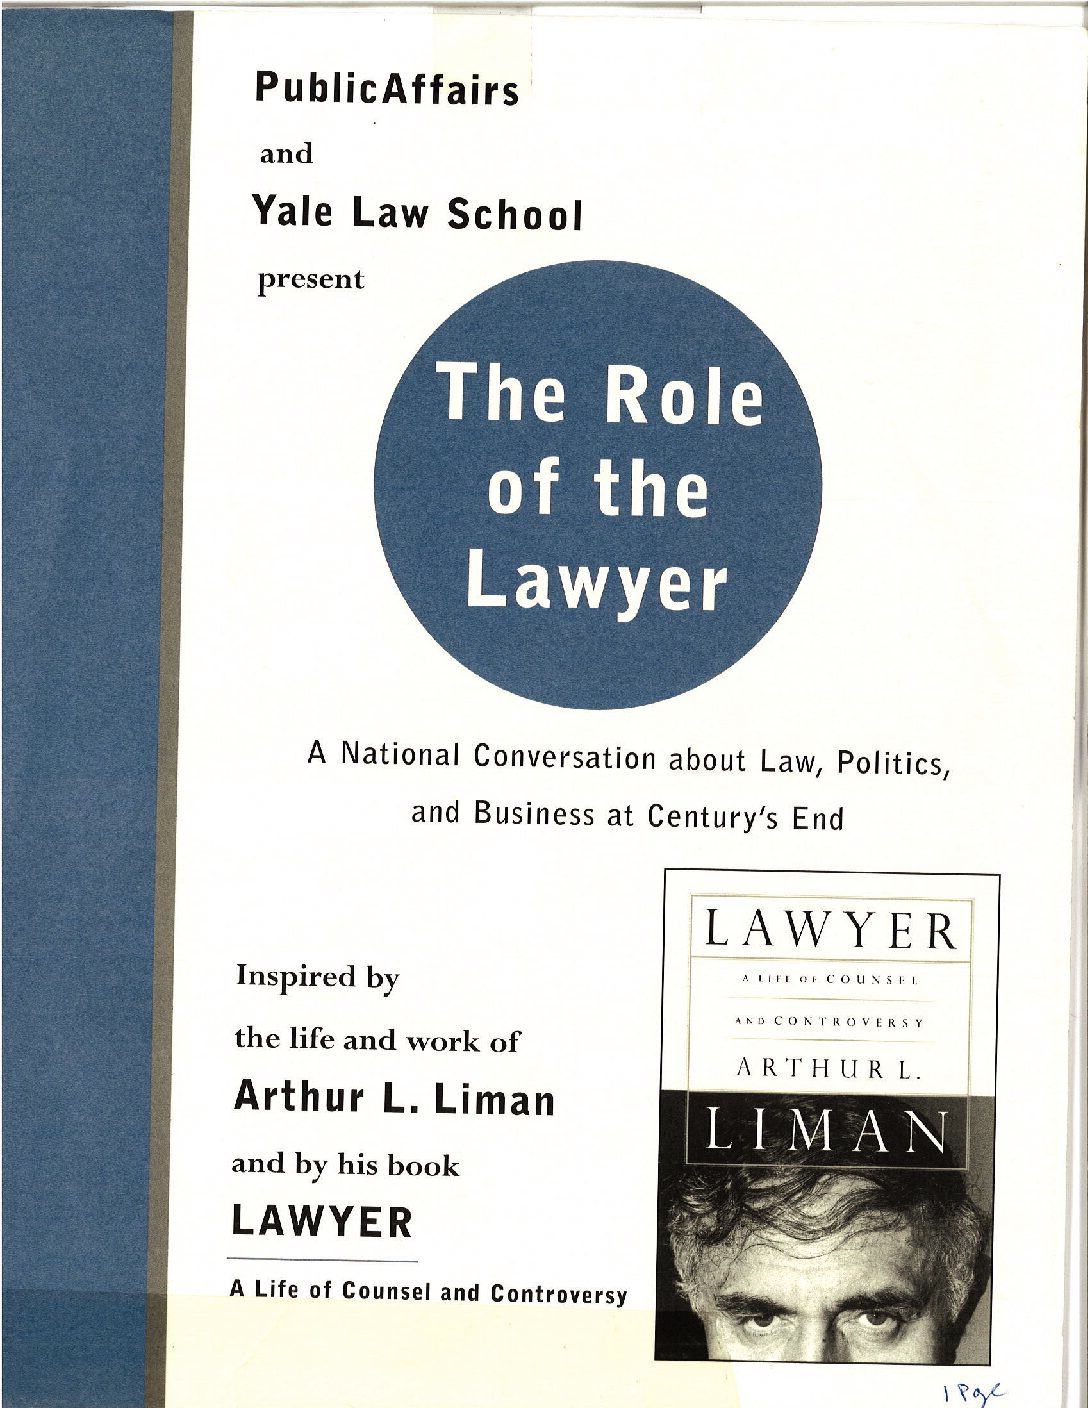 PA and Yale Law School, partners